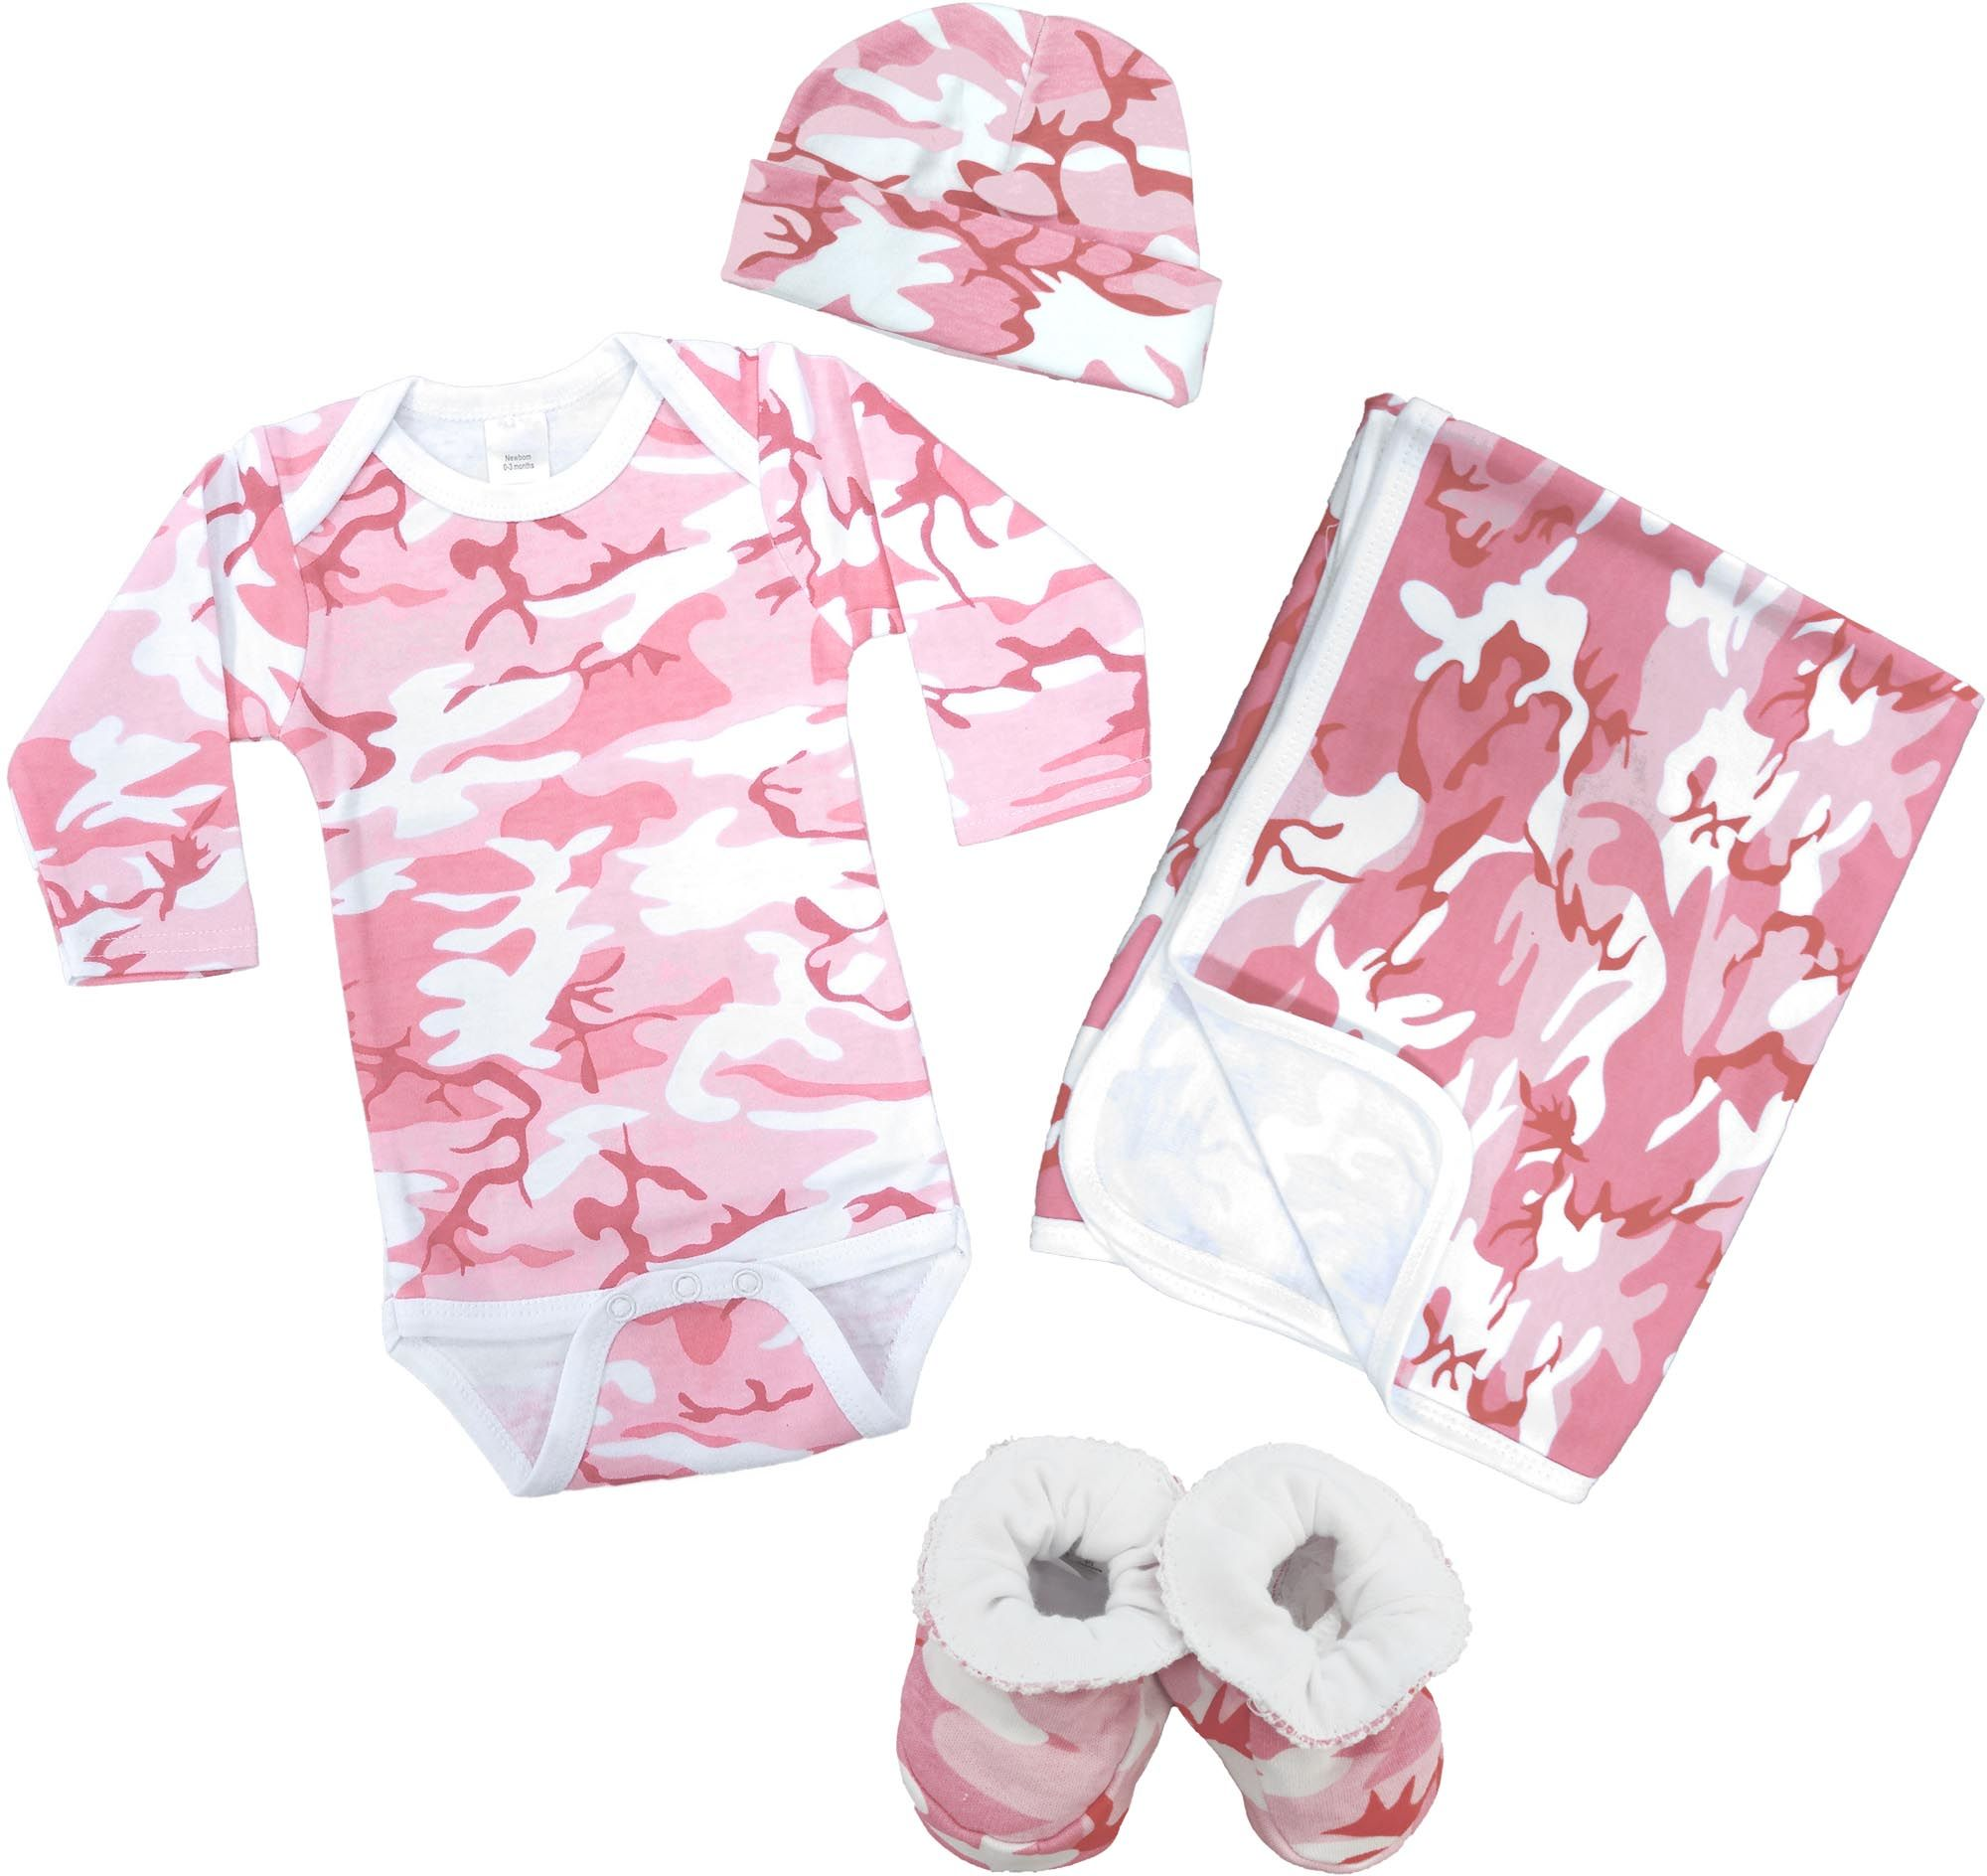 470a89ffc2f9d images of camo baby clothes | Pink Camo Baby Clothing - Deluxe Gift Set |  Baby N Toddler